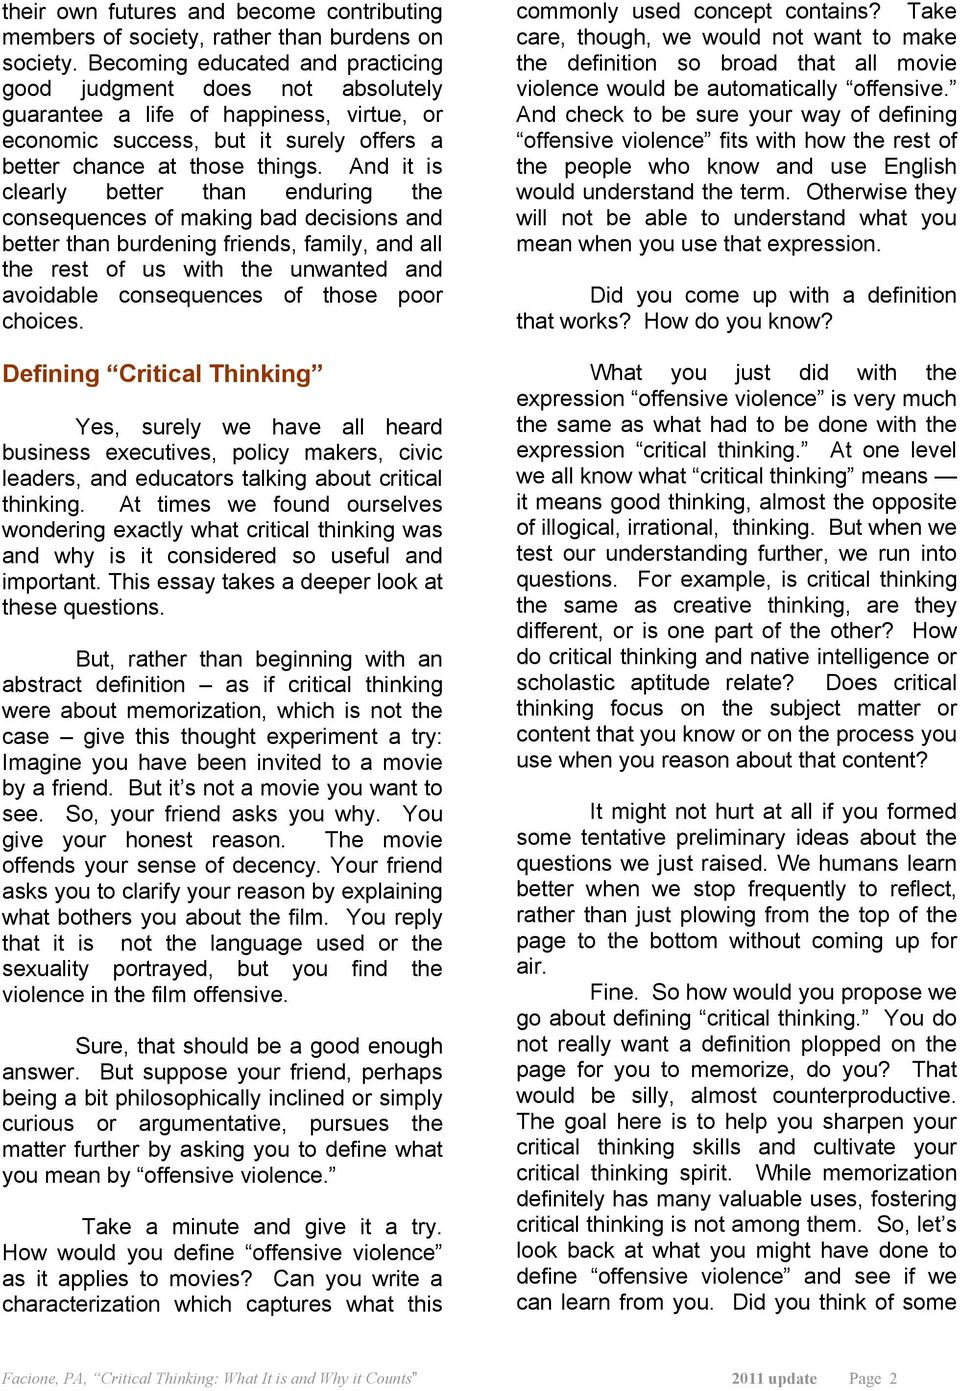 facione pa critical thinking what it is and why it counts